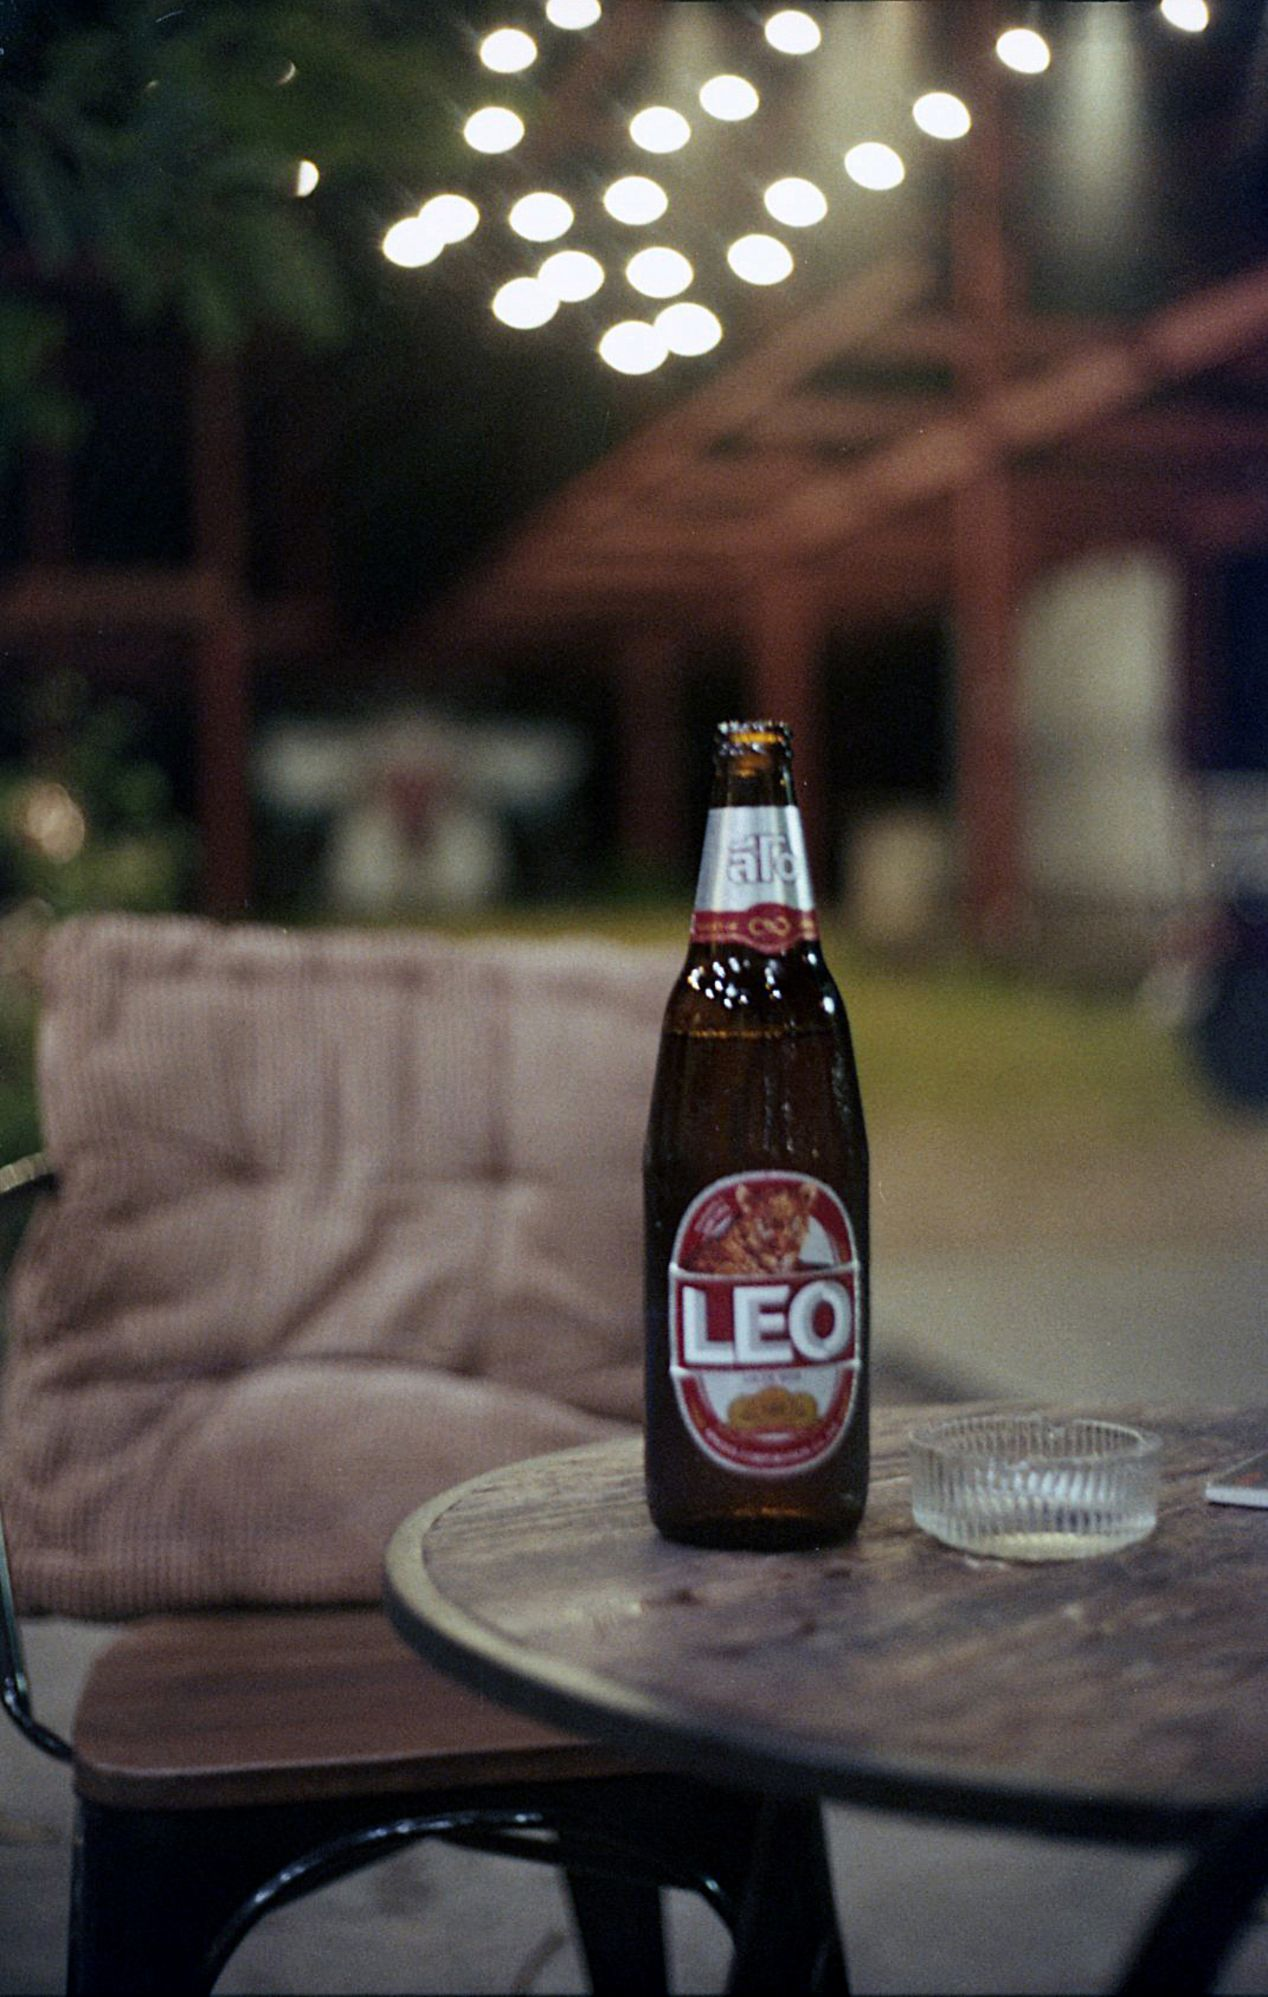 Electro 35 with Agfa Vista 200. The bottle is a bit out of focus here; I'm adding this photo to show the bokeh and the close-distance focus falloff with the 𝒇1.7 Yashinon lens at night.